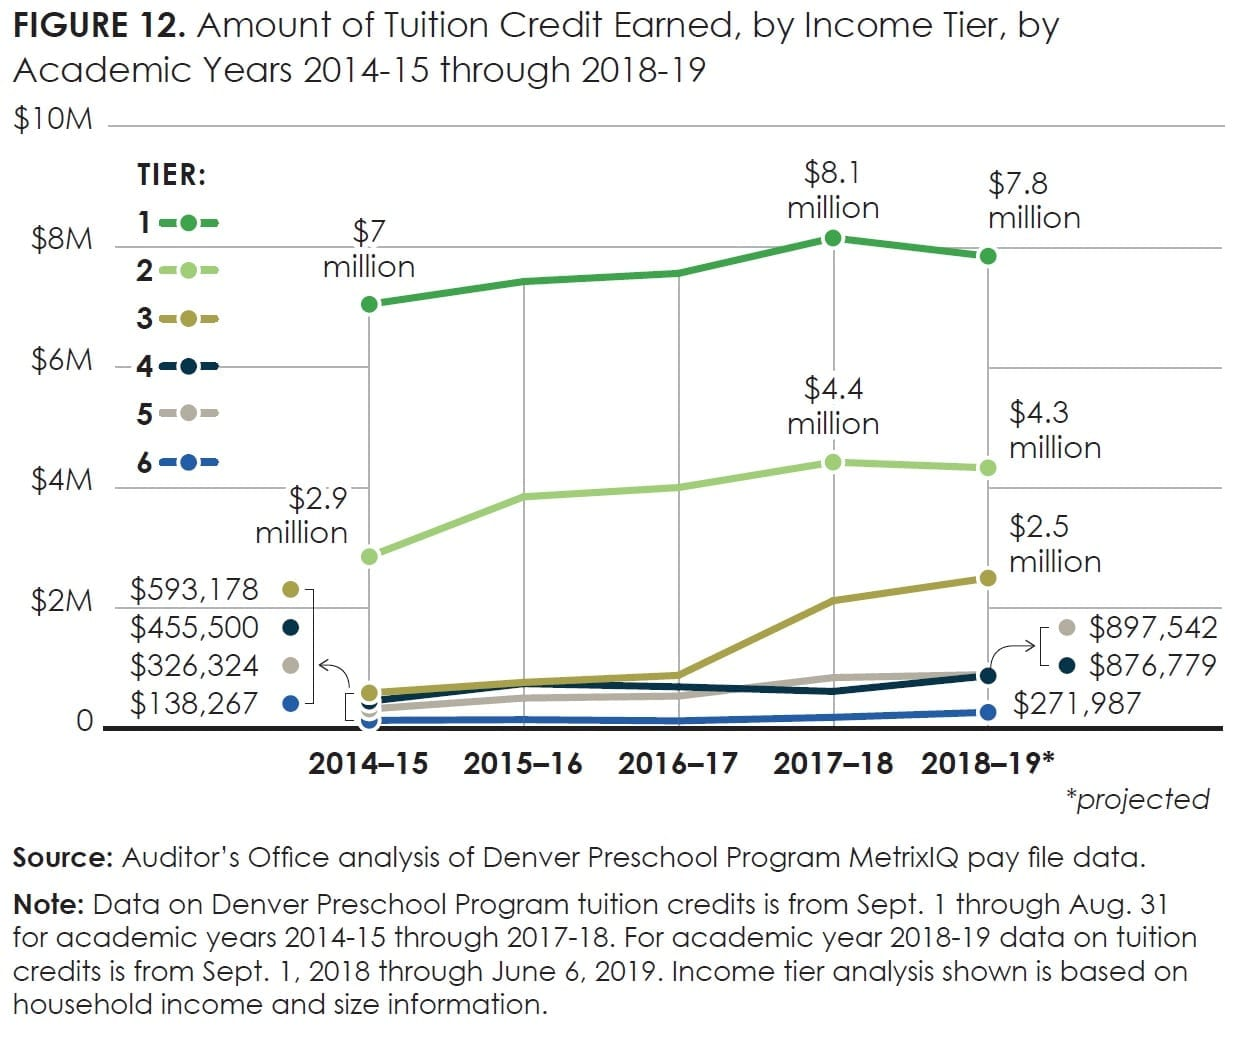 Figure12_Amount of Tuition Credit Earned, by Income Tier, by Academic Years 2014-15 through 2018-19